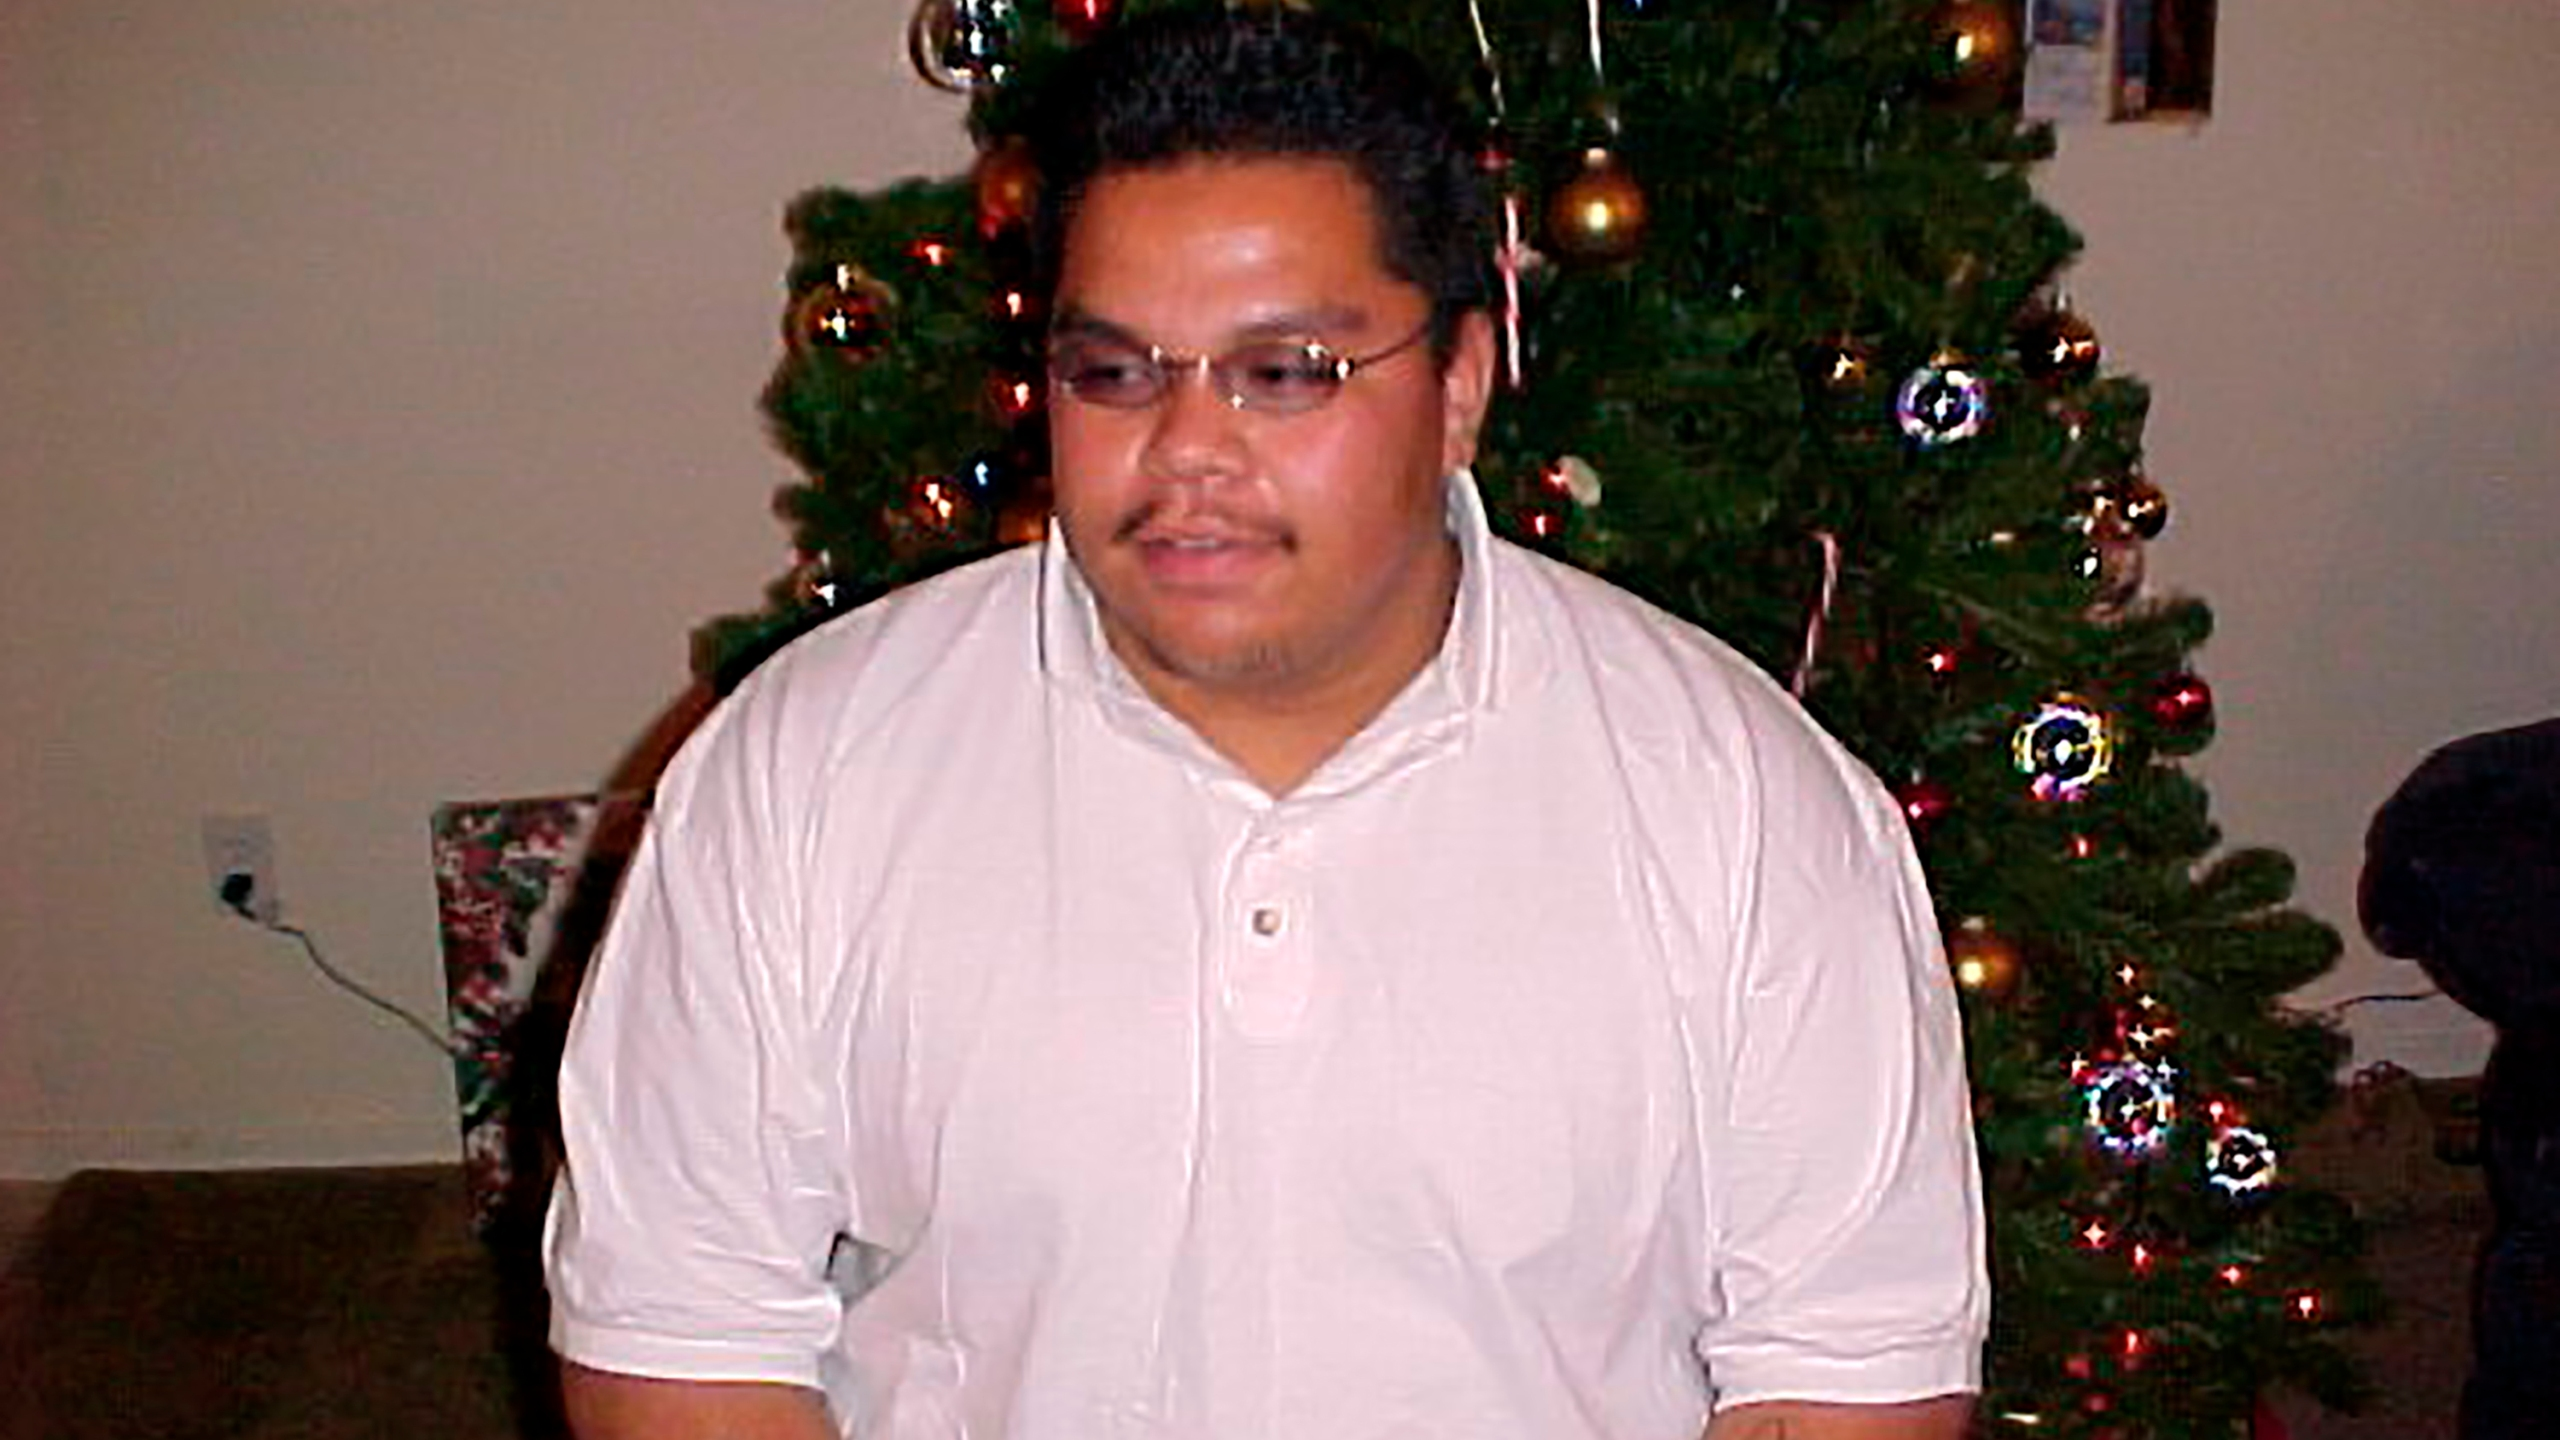 This undated family photo provided by Auska Mitchell shows Lezmond Mitchell, who is scheduled to be executed on Wednesday, Aug. 26, 2020, at the federal prison complex in Terre Haute, Ind., for the 2001 killing of Alyce Slim and her granddaughter. The Navajo government is pushing to spare his life on the basis cultural beliefs and sovereignty. Mitchell was the first Native American sentenced to death since the resumption of the federal death penalty in 1994 and the only Native American awaiting his punishment. (Courtesy Auska Mitchell via AP)